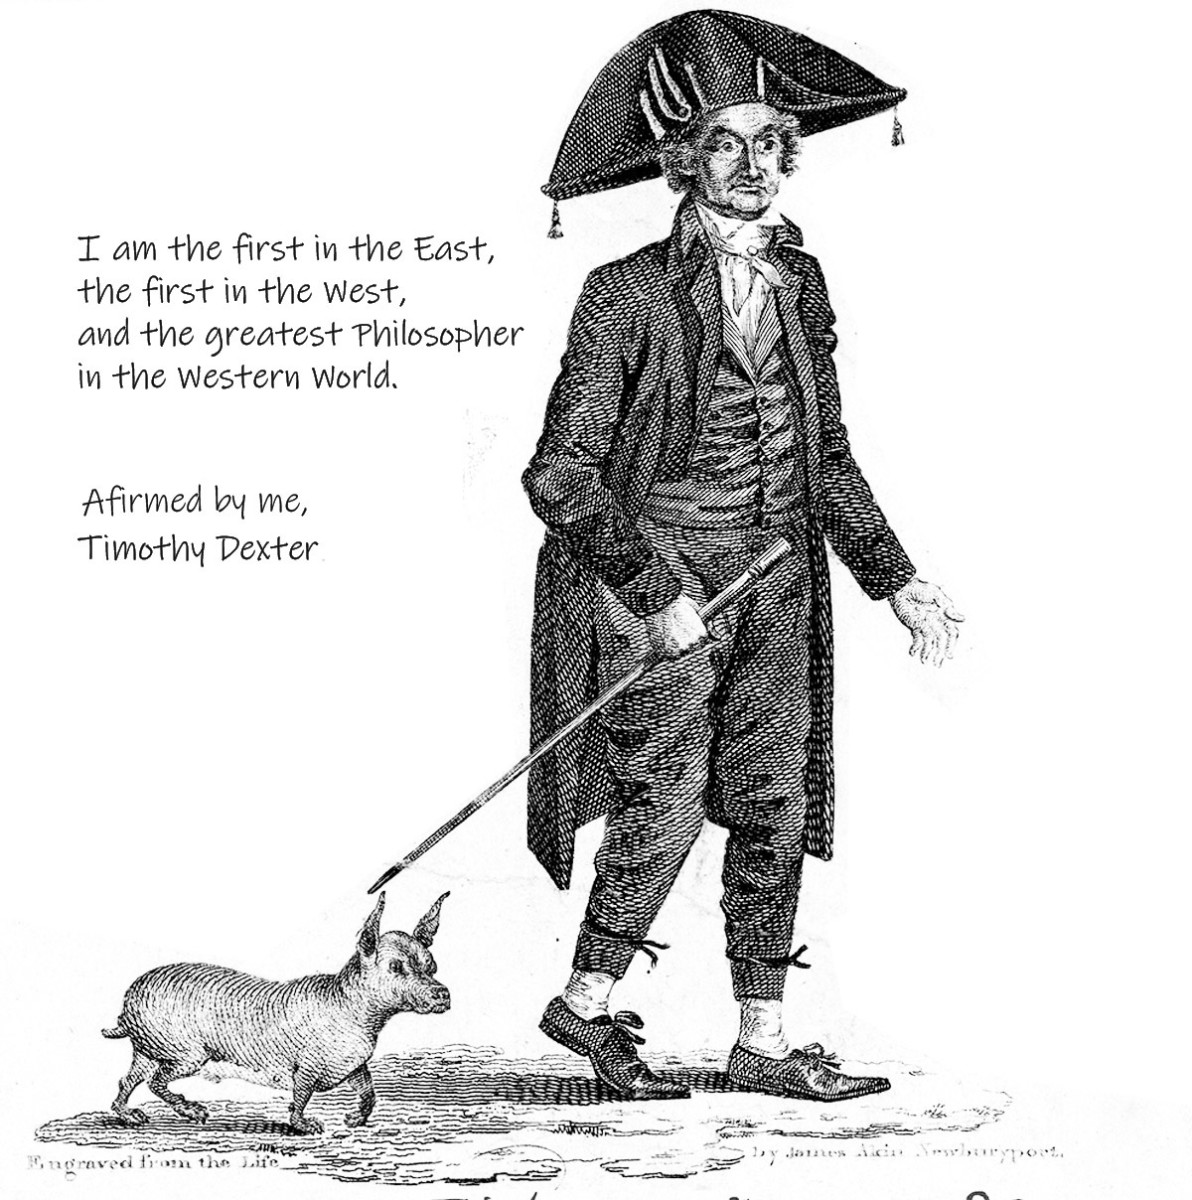 An engraving of Timothy Dexter shortly before he died.